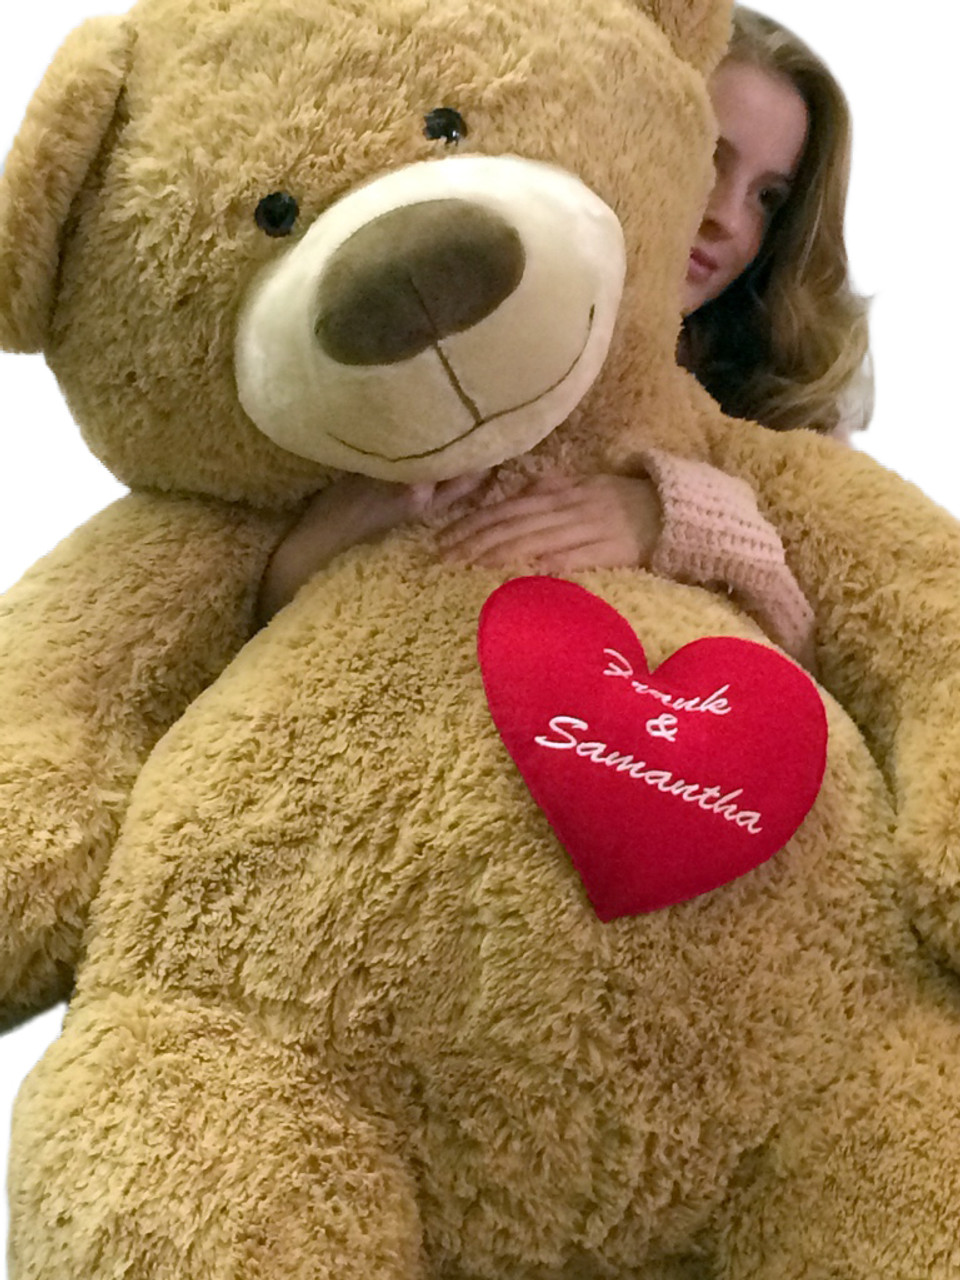 a97afd2b851 Your Custom Personalized Name or Message on 5 Foot Giant Teddy Bear